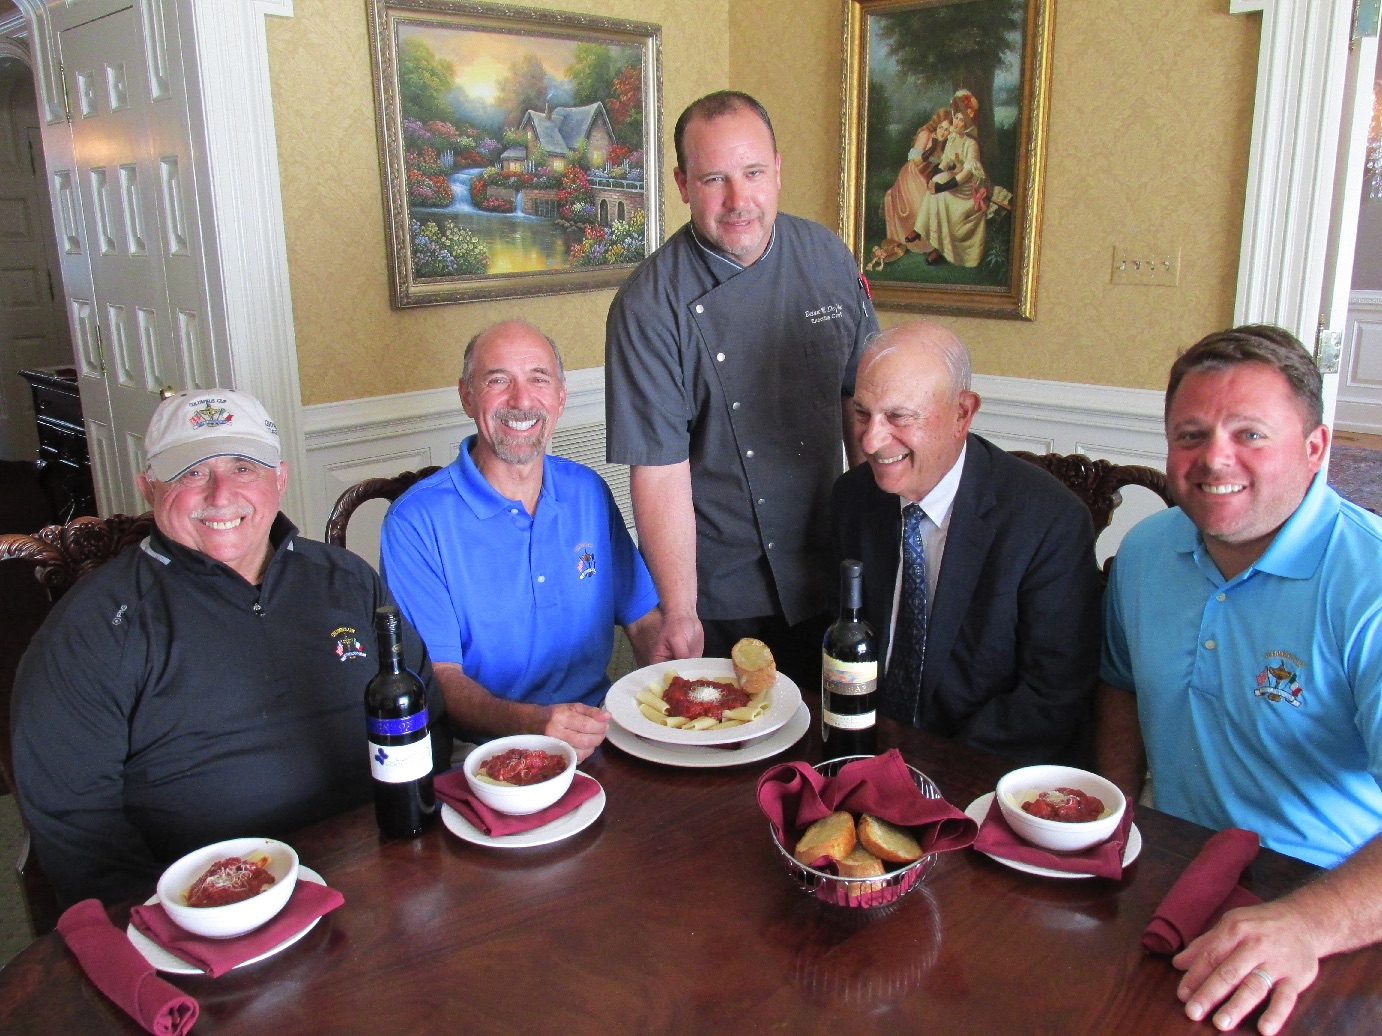 Columbus Cup Celebration at Bellewood CC Adds Traditional Italian Street Feast Dish